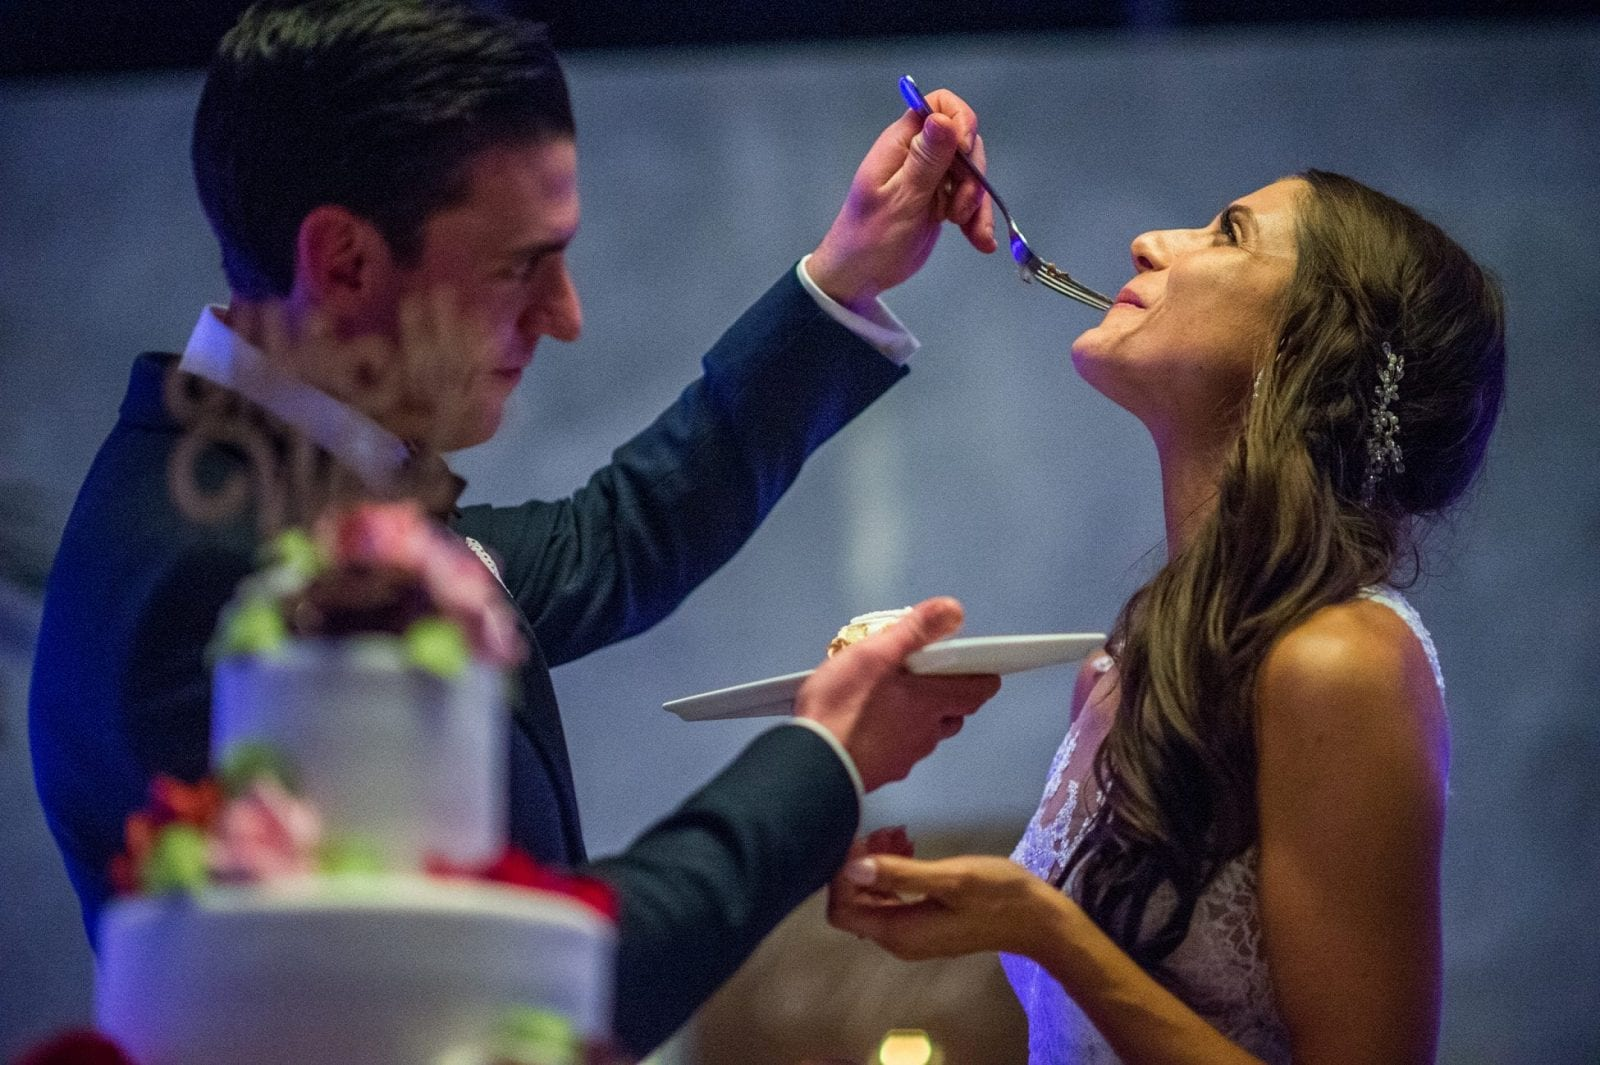 Groom feeding bride cake with a fork in the ballroom of the crescent beach club